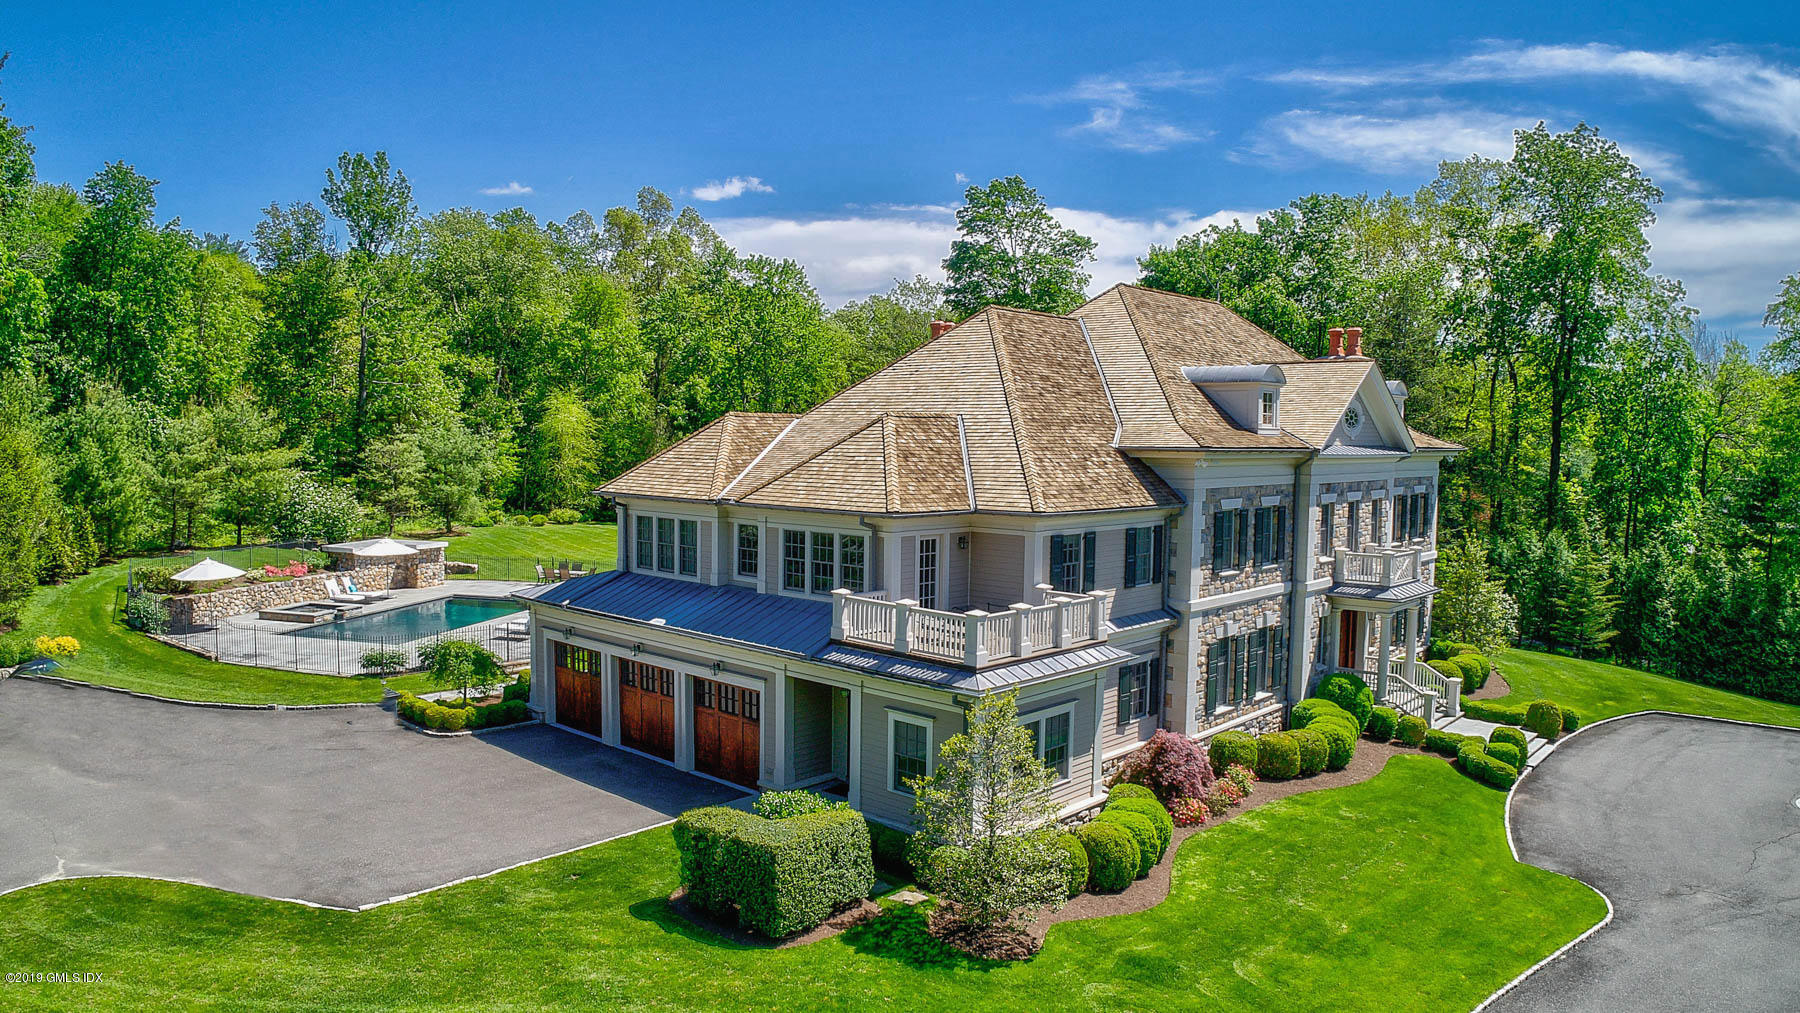 26 Wooddale Road,Greenwich,Connecticut 06830,6 Bedrooms Bedrooms,7 BathroomsBathrooms,Single family,Wooddale,105435